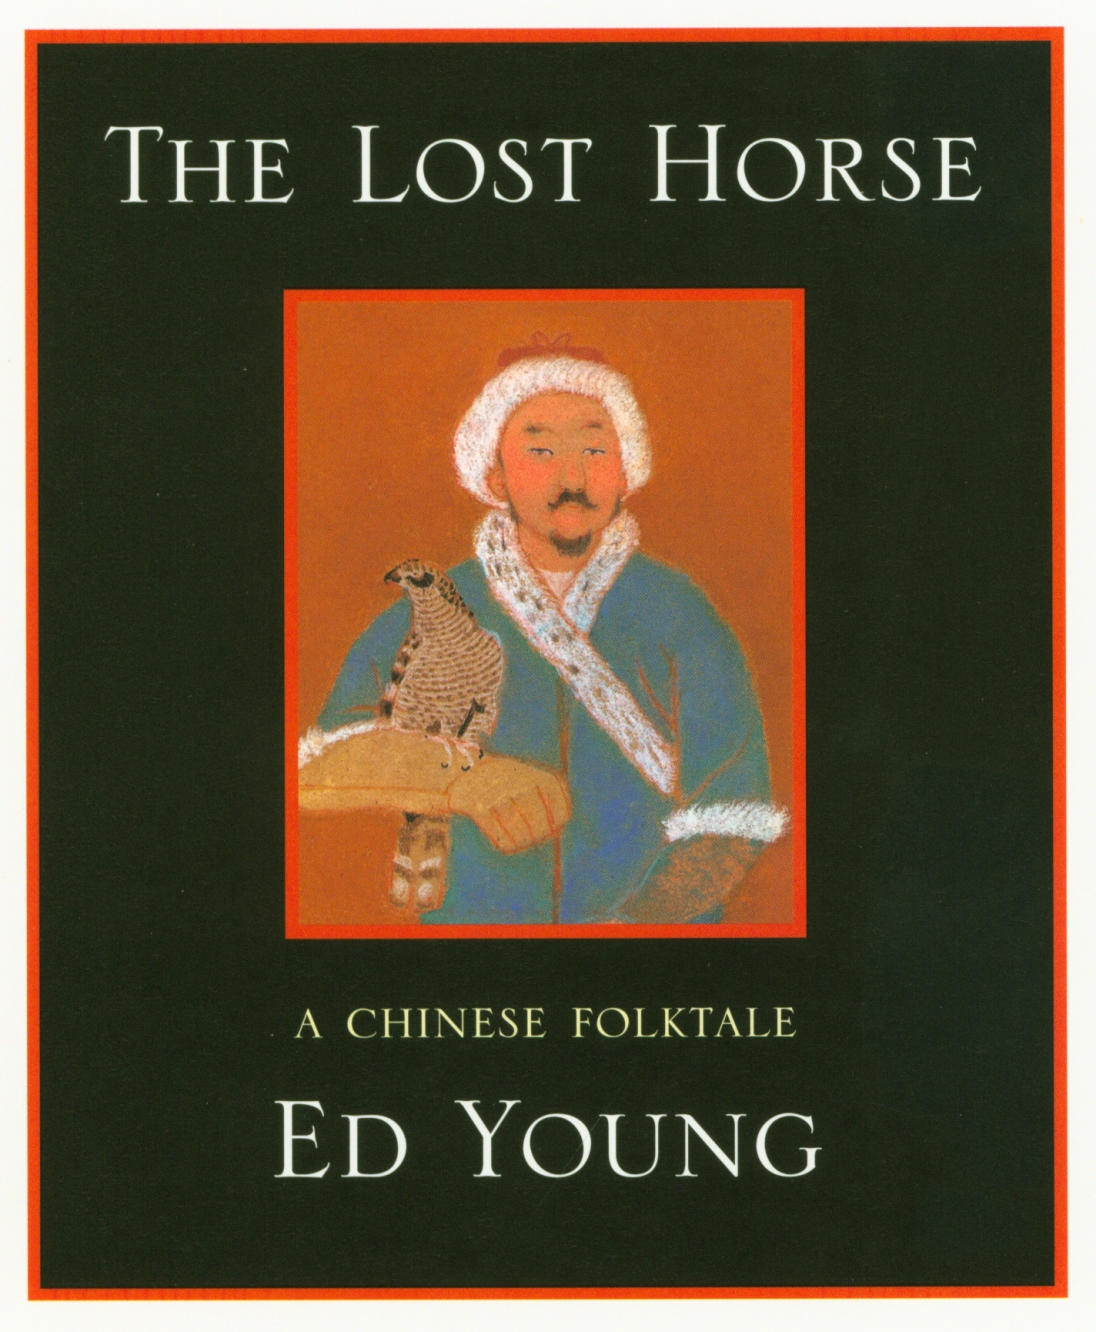 The Lost Horse, title page